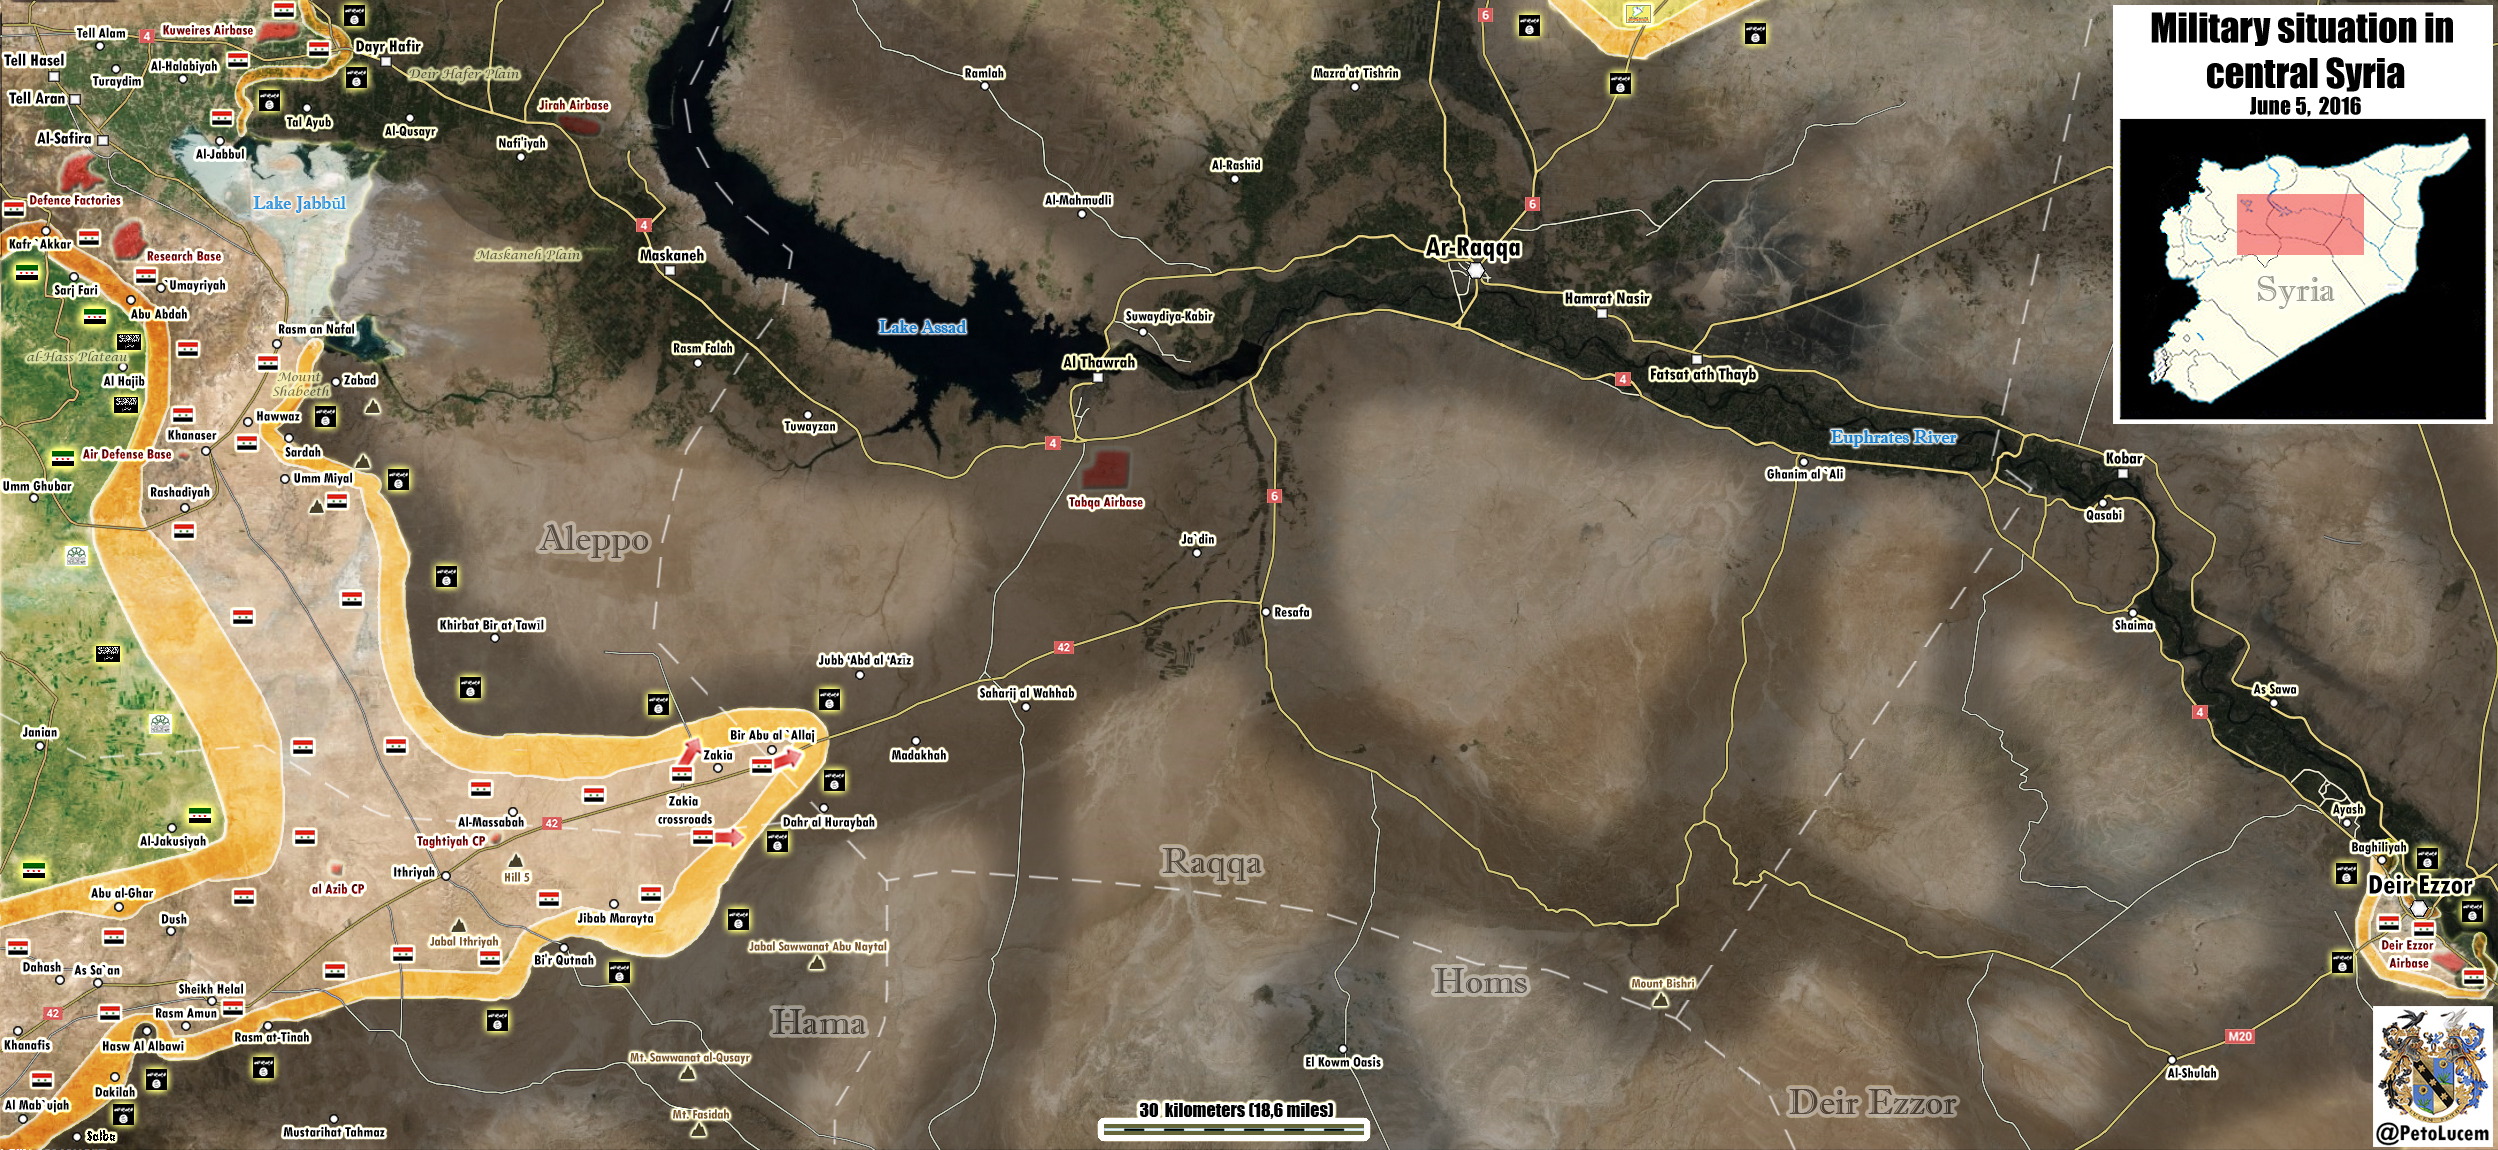 Syria's Army Advances on Raqqa City, Military Situation in the Province